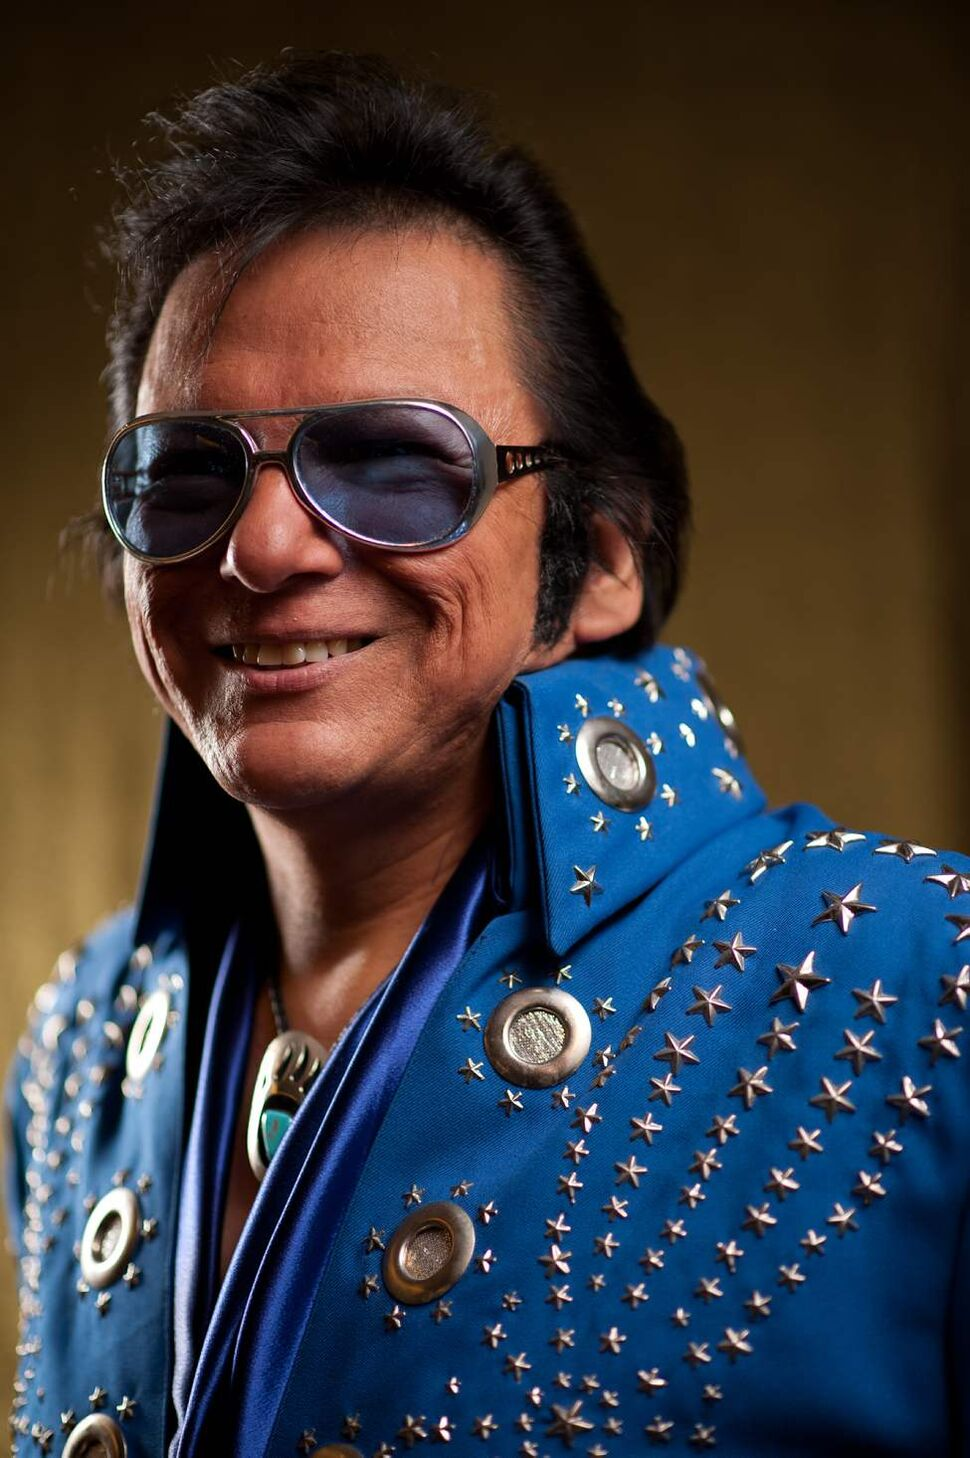 "Gerry ""the Big Bear"" Barret as Elvis. Elvis impersonators performed for a full Gimli recreation centre, which comes less than a week before the 35th anniversary of Elvis's death. COLE BREILAND / WINNIPEG FREE PRESS"